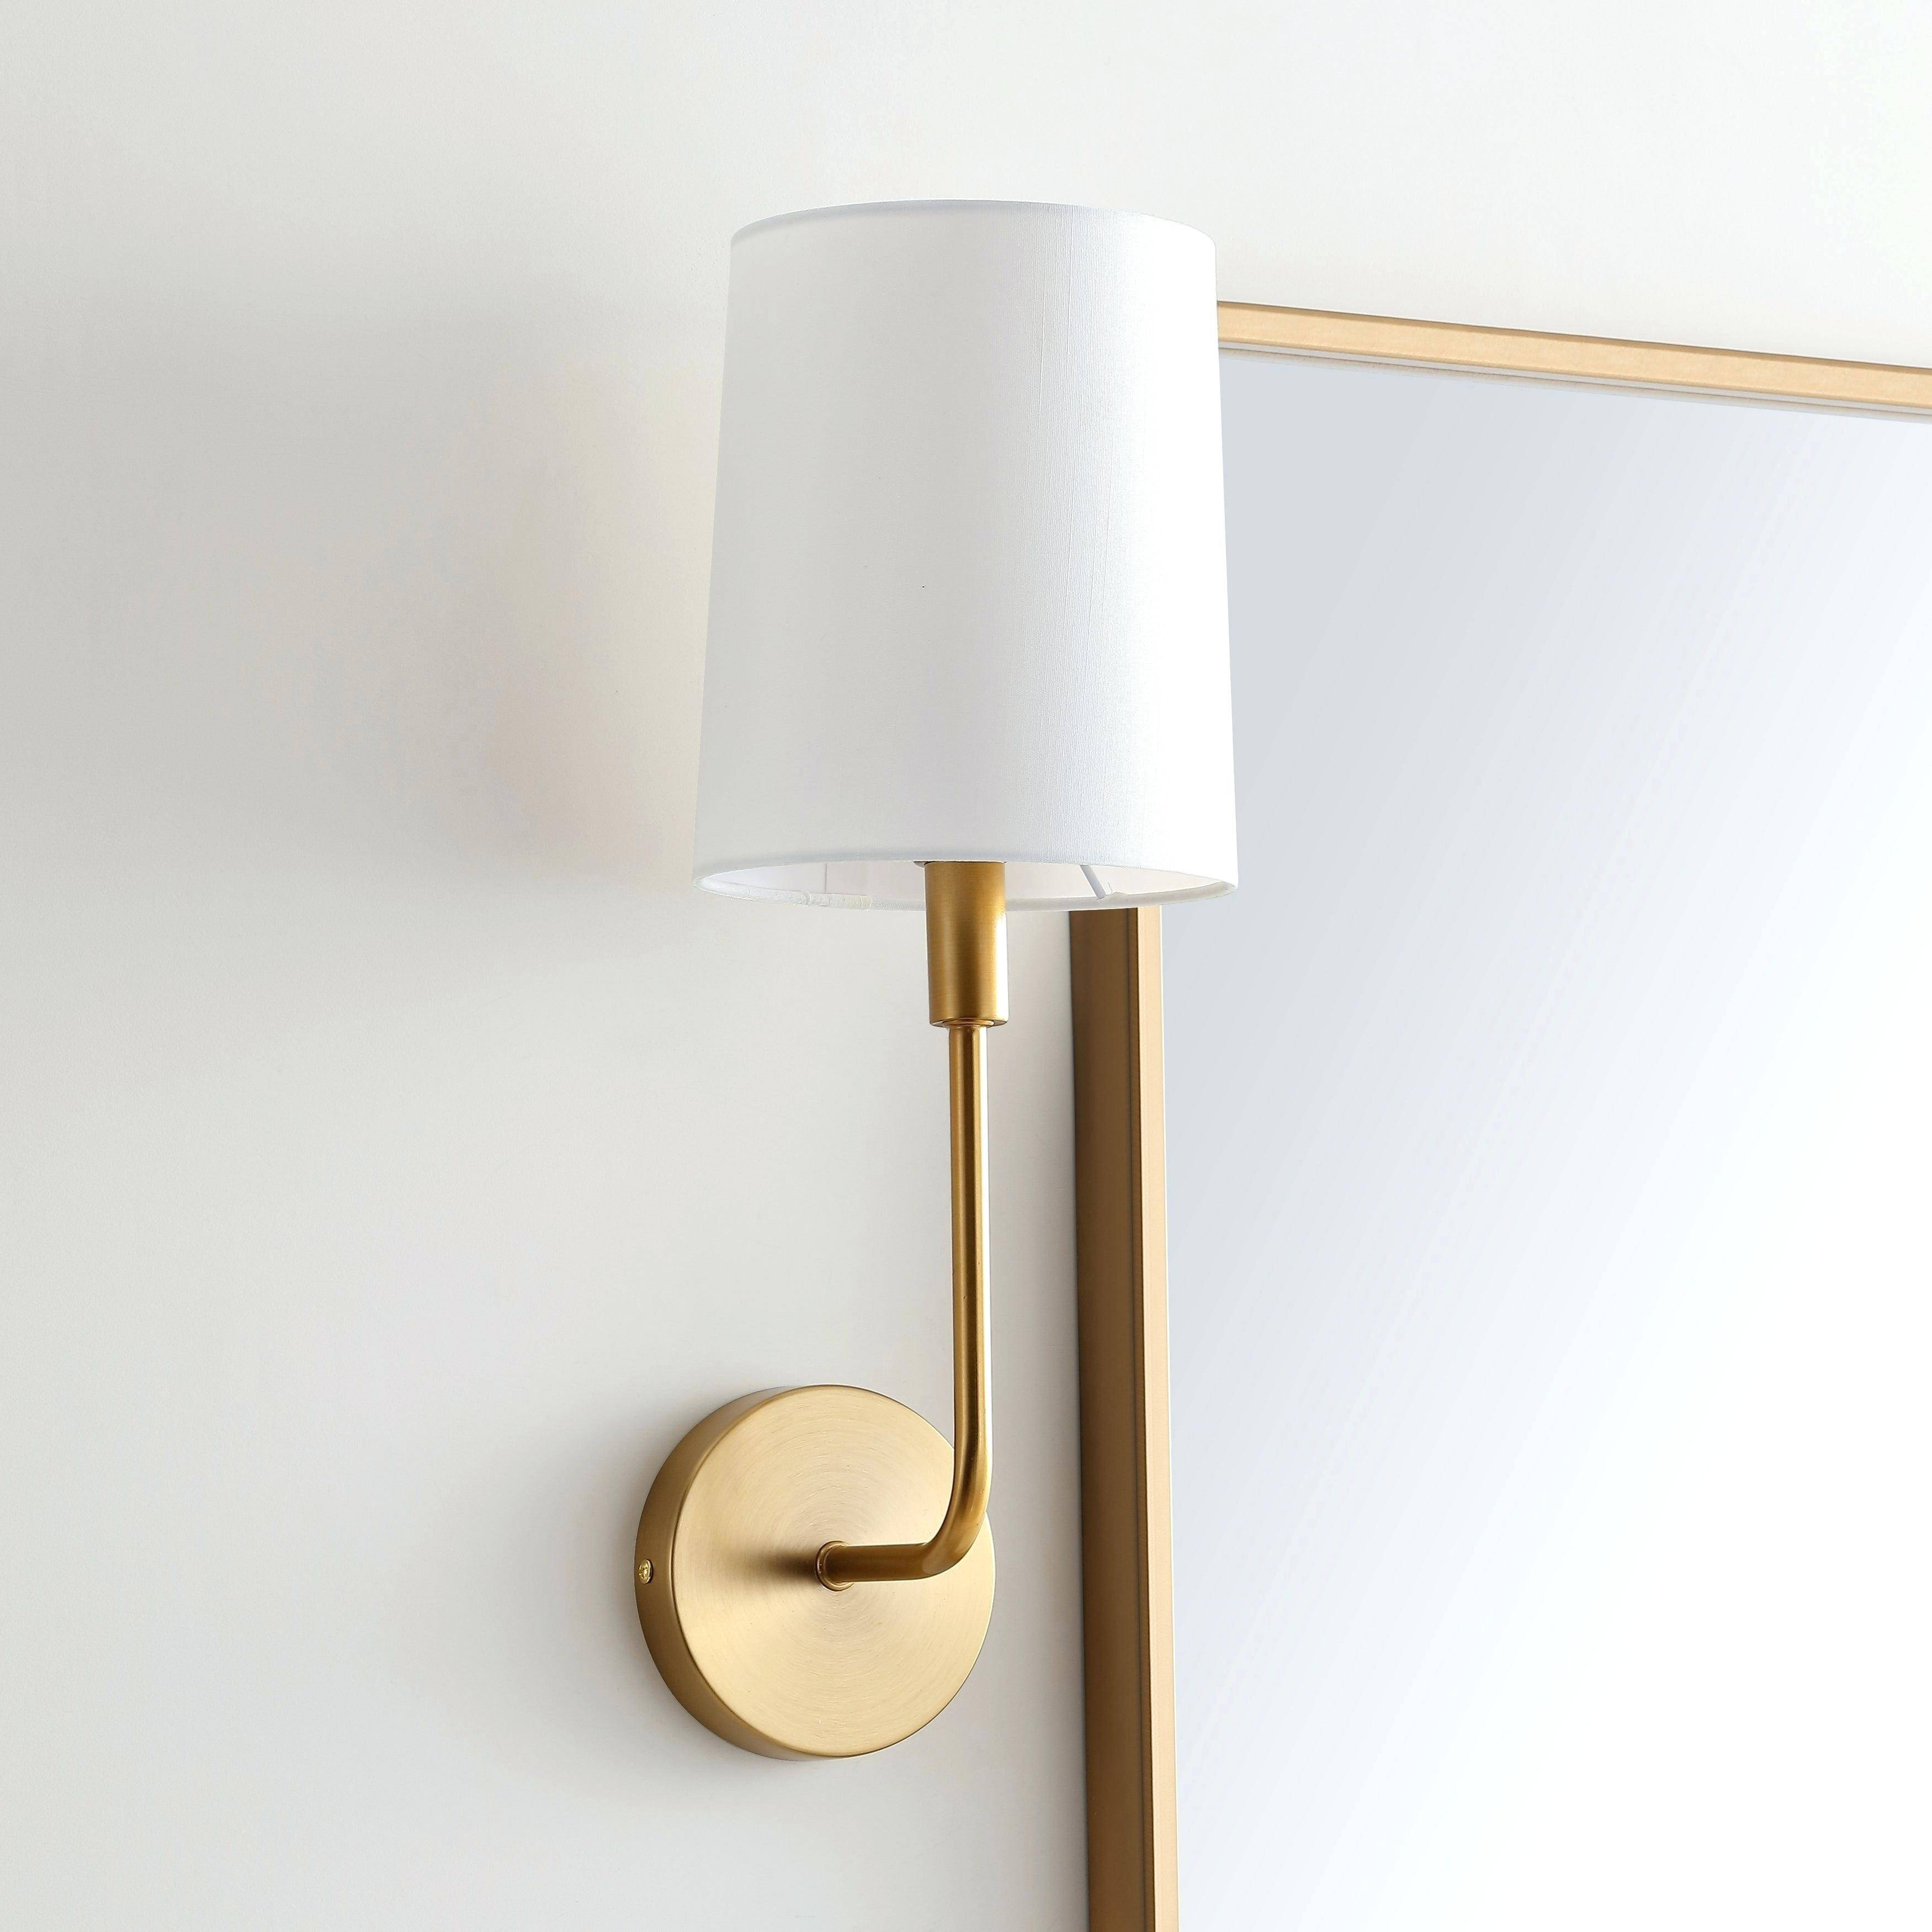 wall light sconces wall light sconces battery operated tea light wall sconces uk wall light sconces ikea